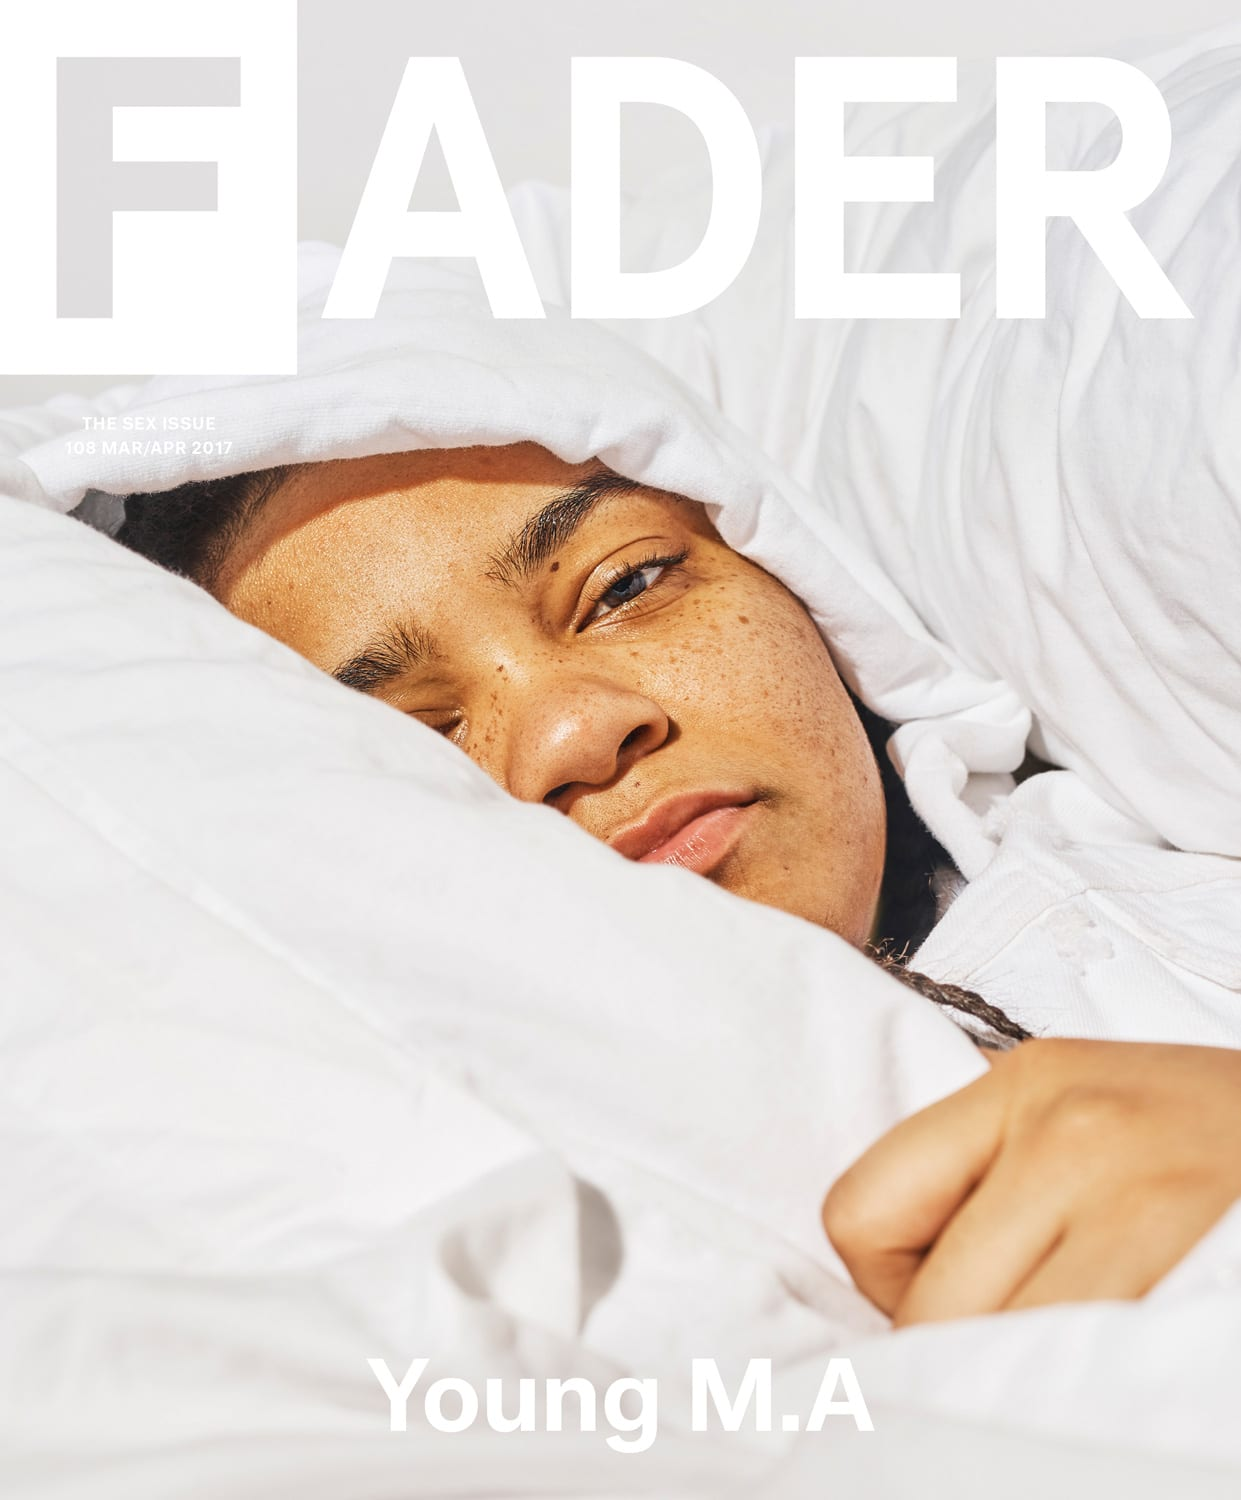 Young M.A for The FADER